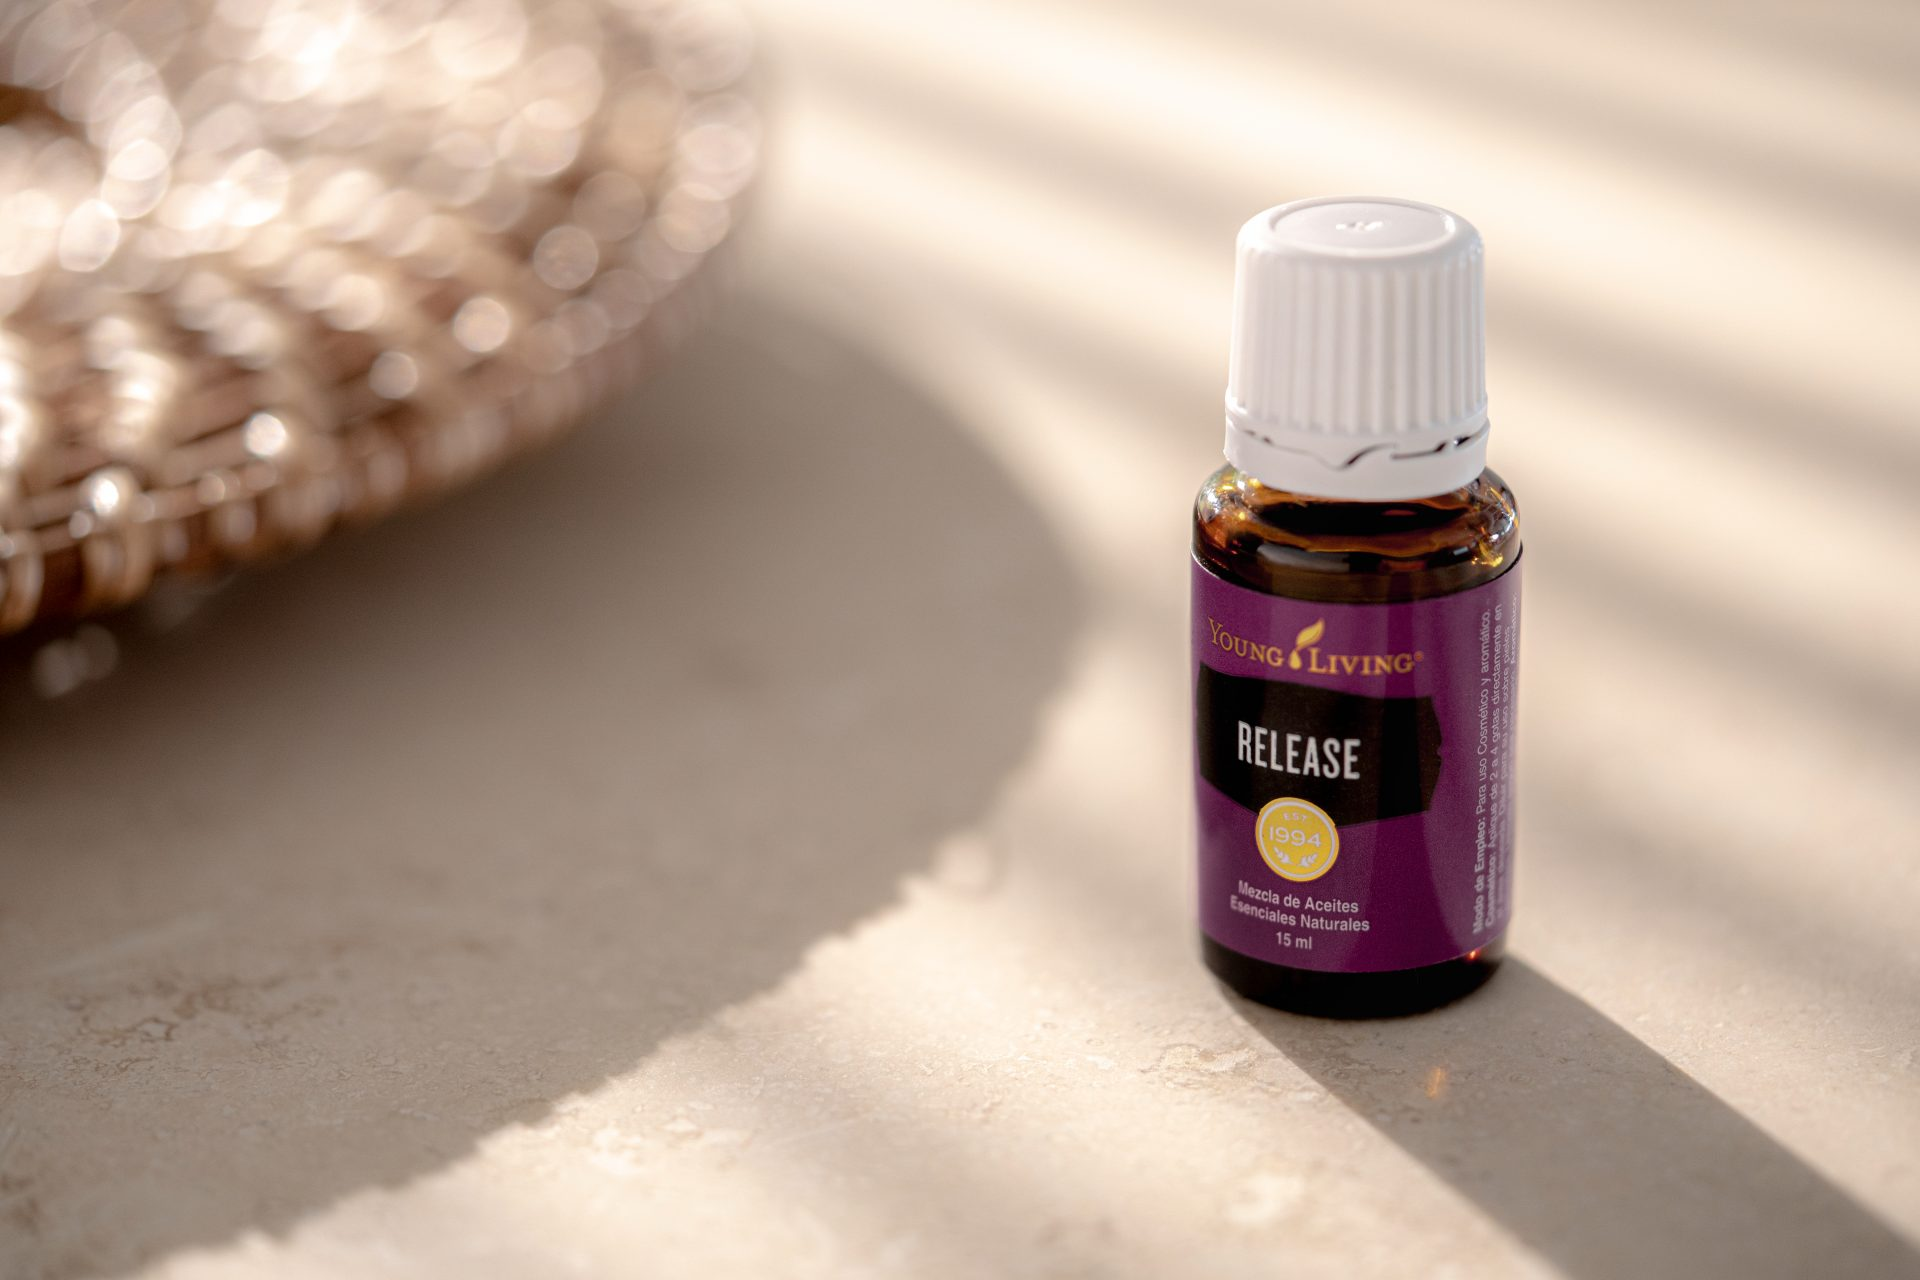 Young Living Essential Oil Release essential oil blend